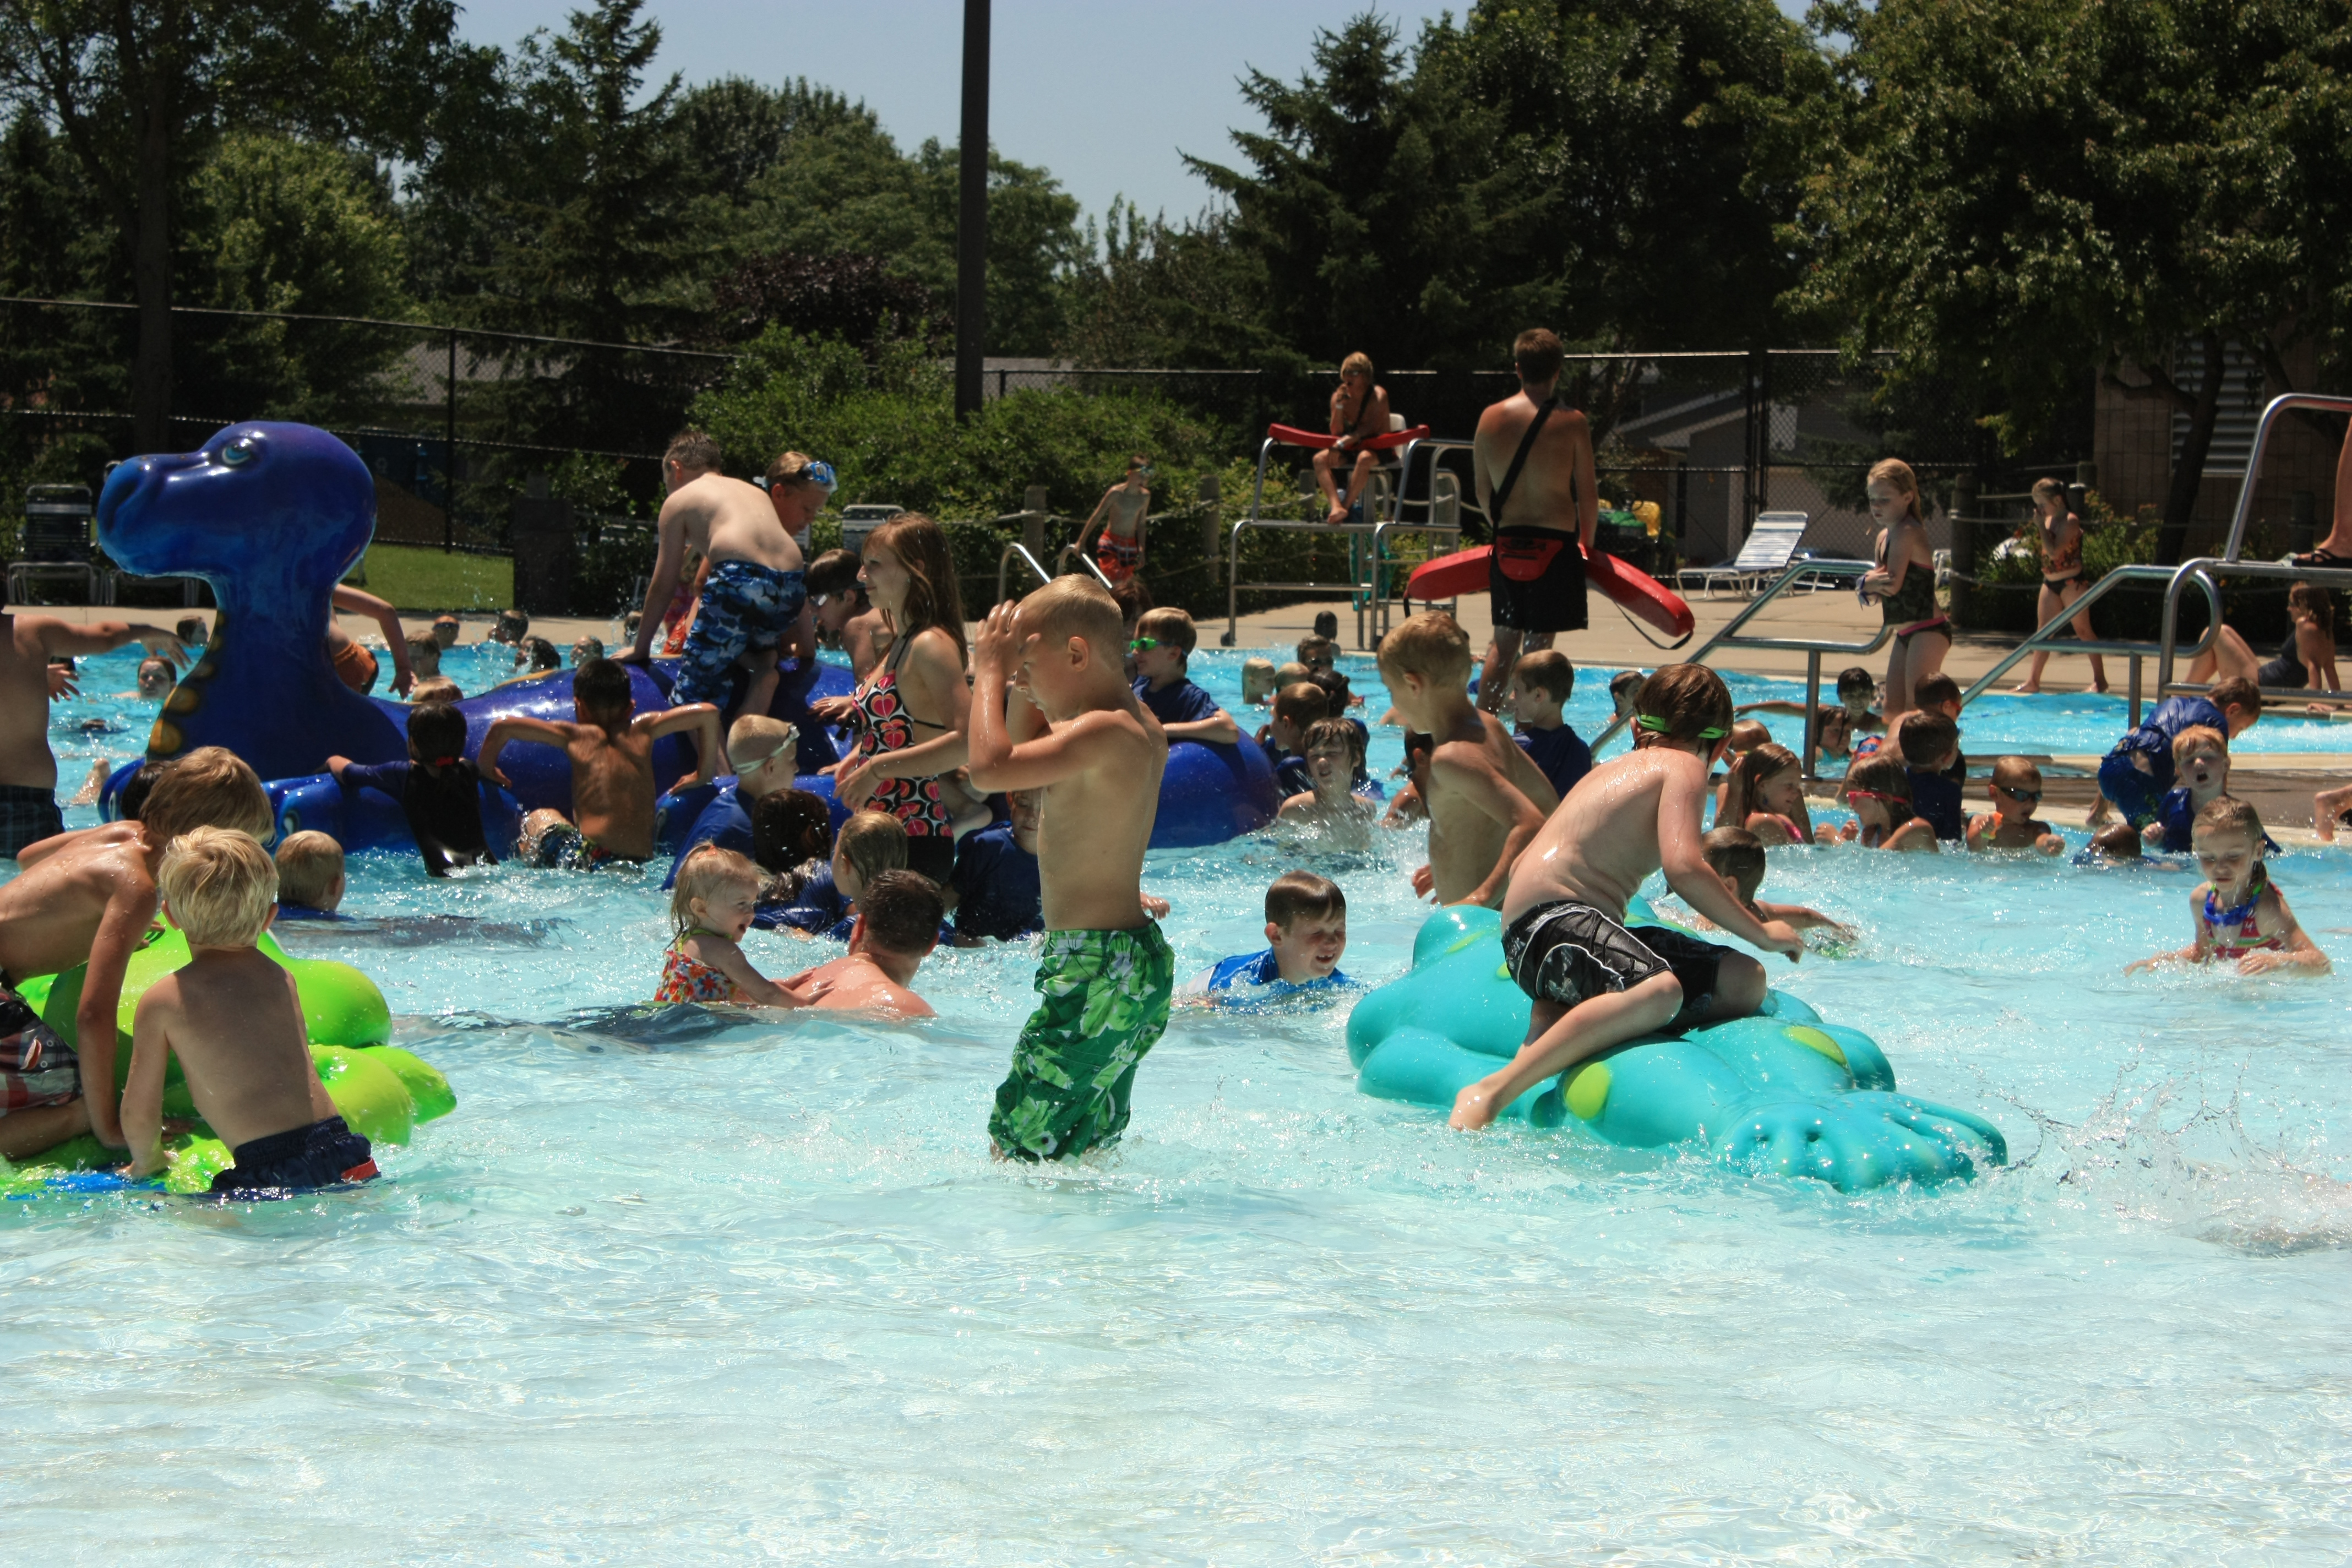 /upload/images/parks/laurel_oak_pool/flowers-pool 2.jpg